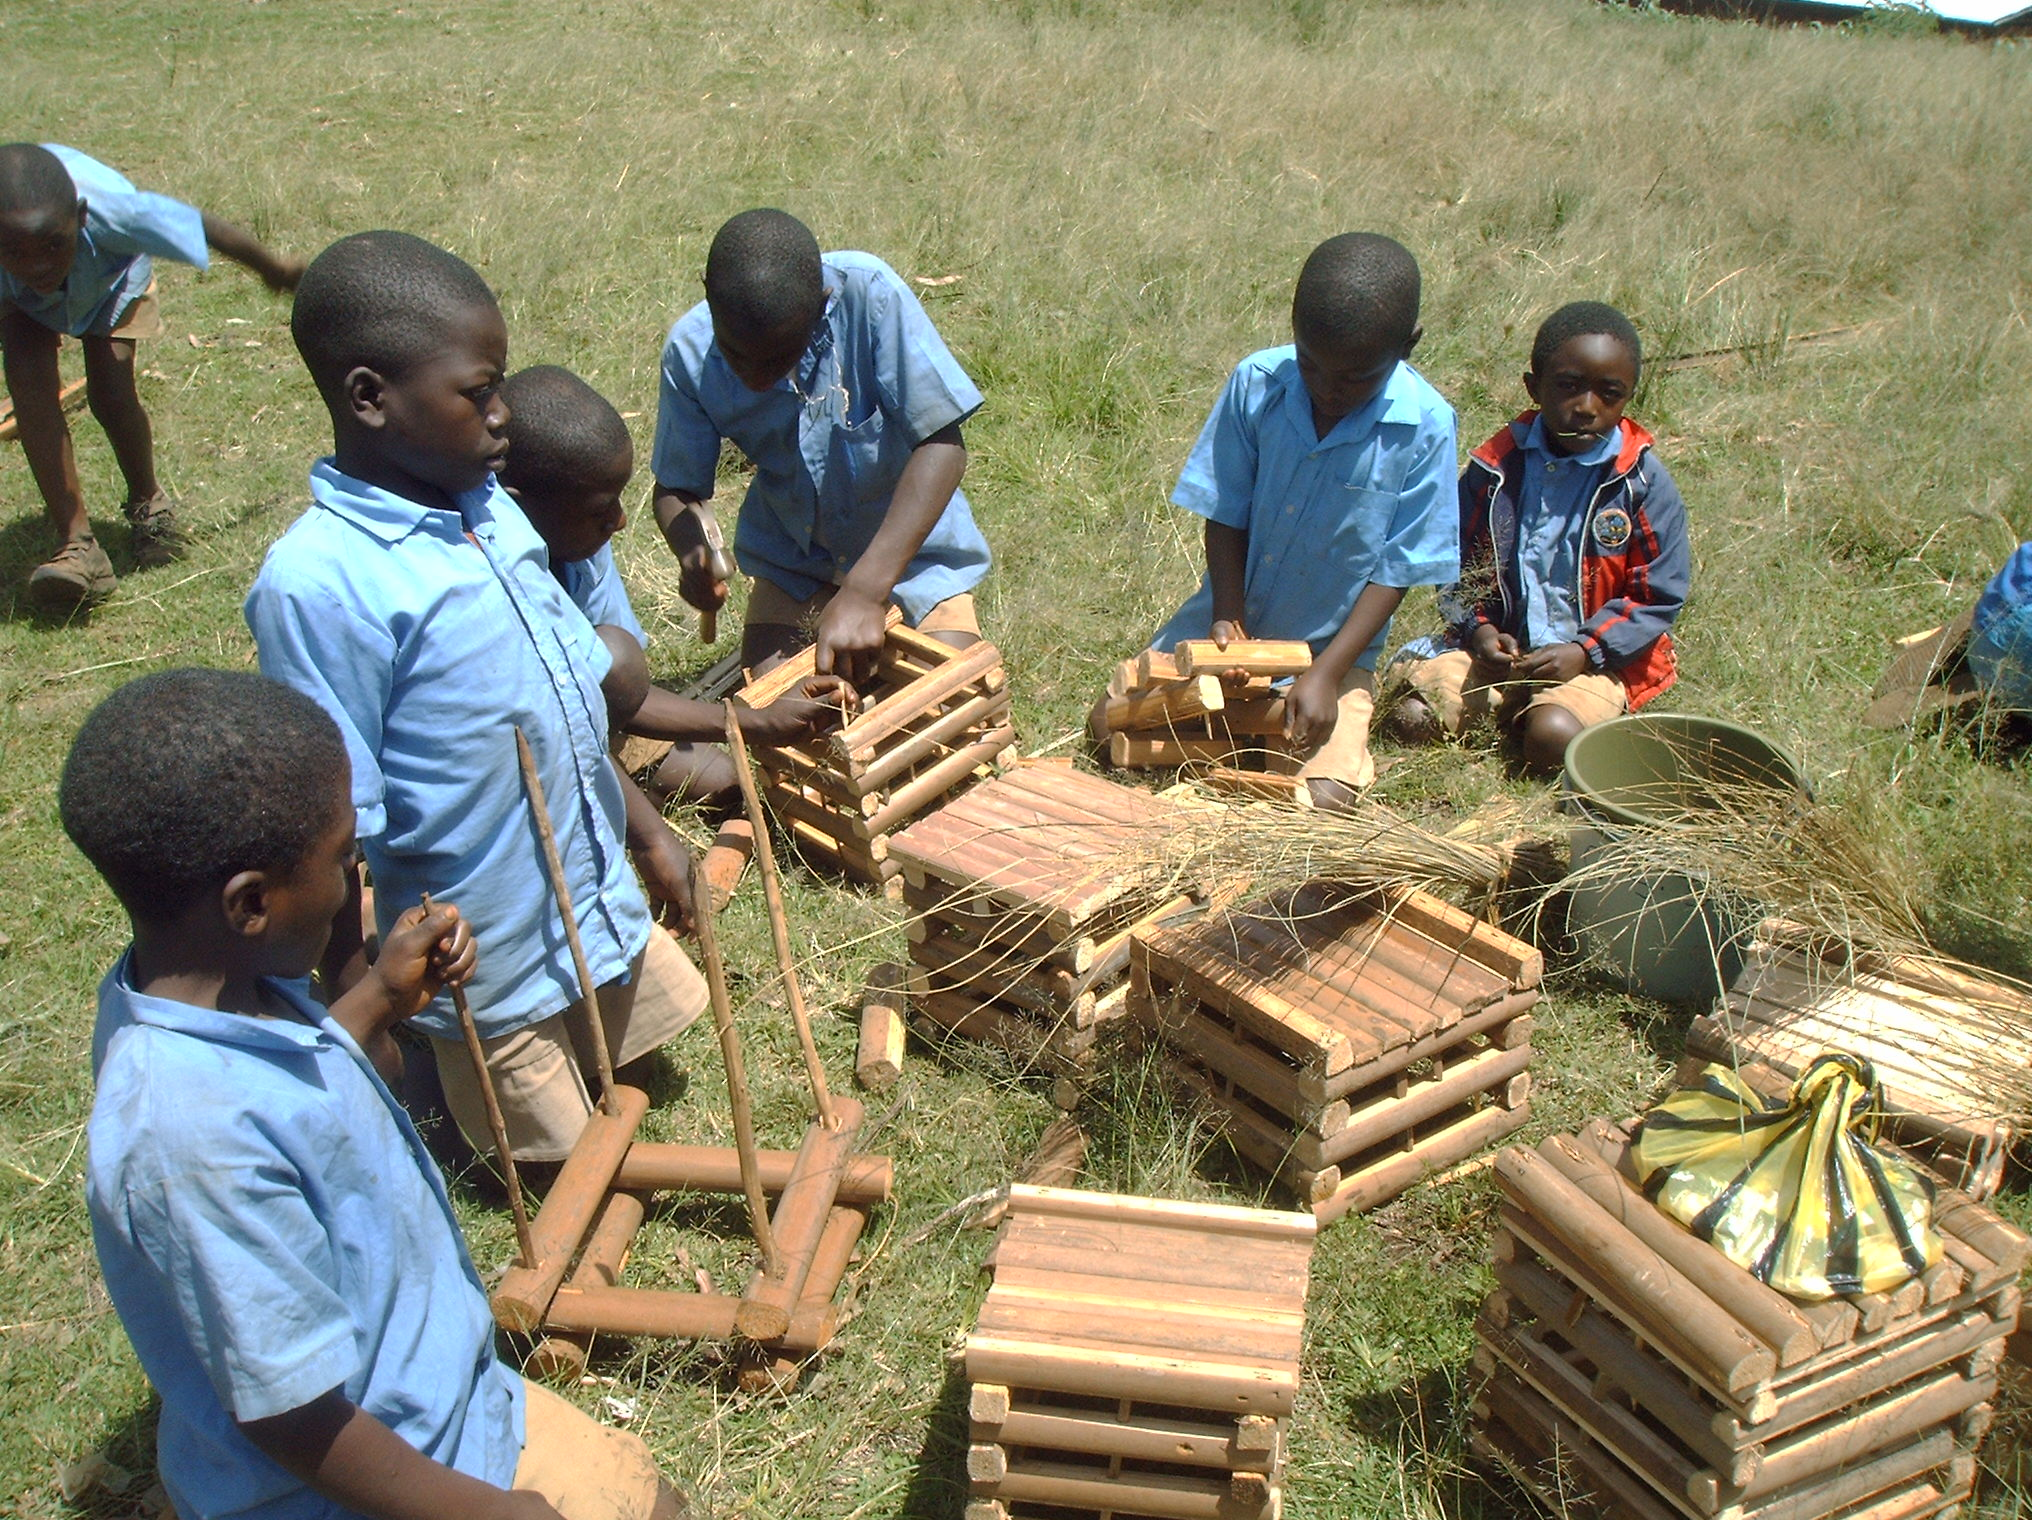 Children Learn-by-Doing Craft Work Project